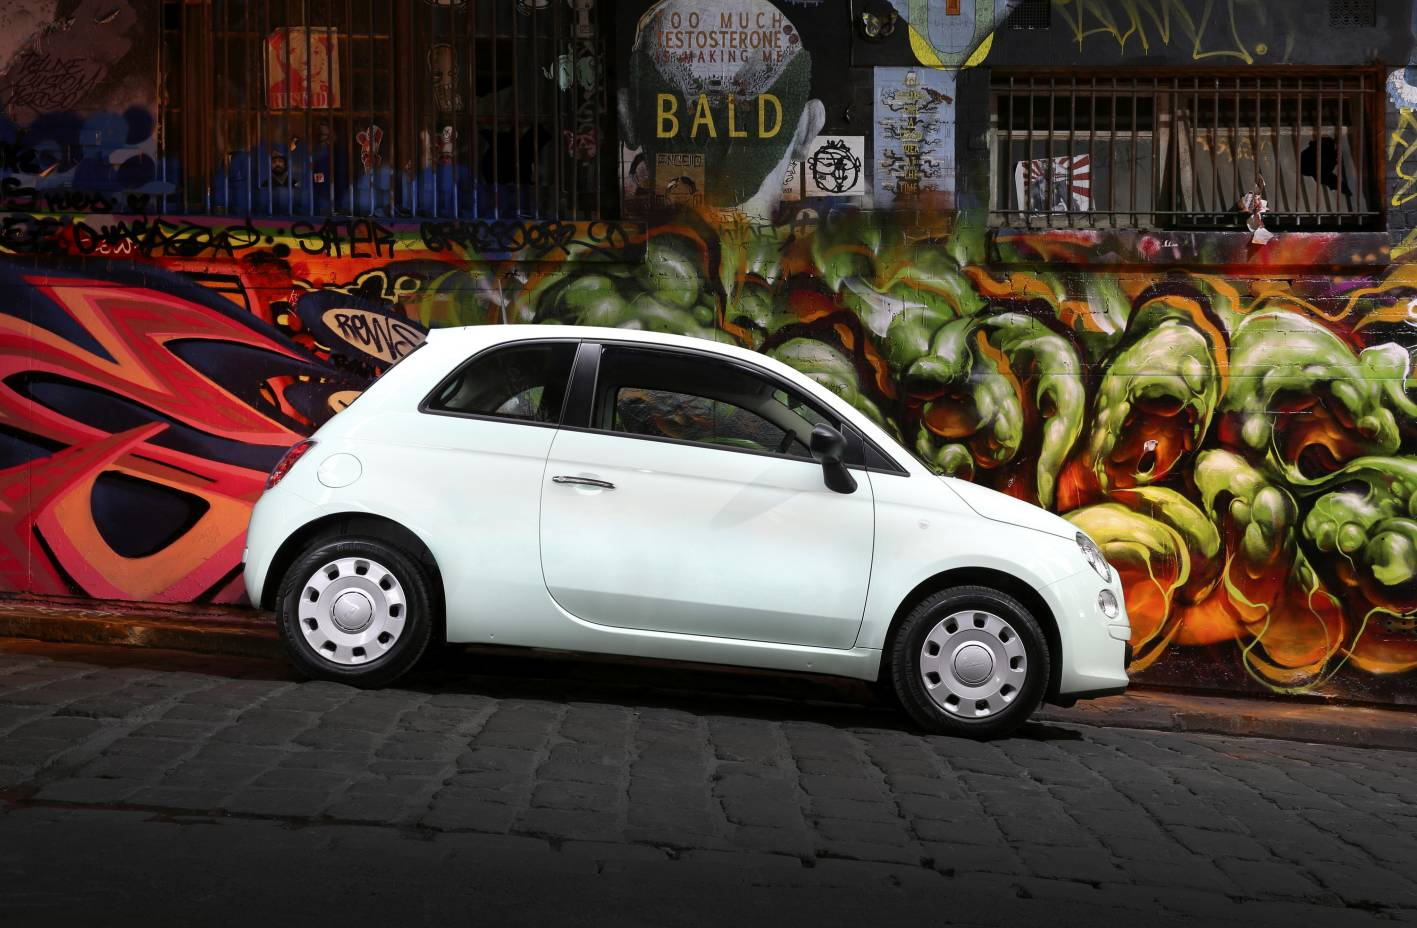 Fiat 500 Dimensions >> Fiat 500 Review: 2014 Fiat 500 Pop